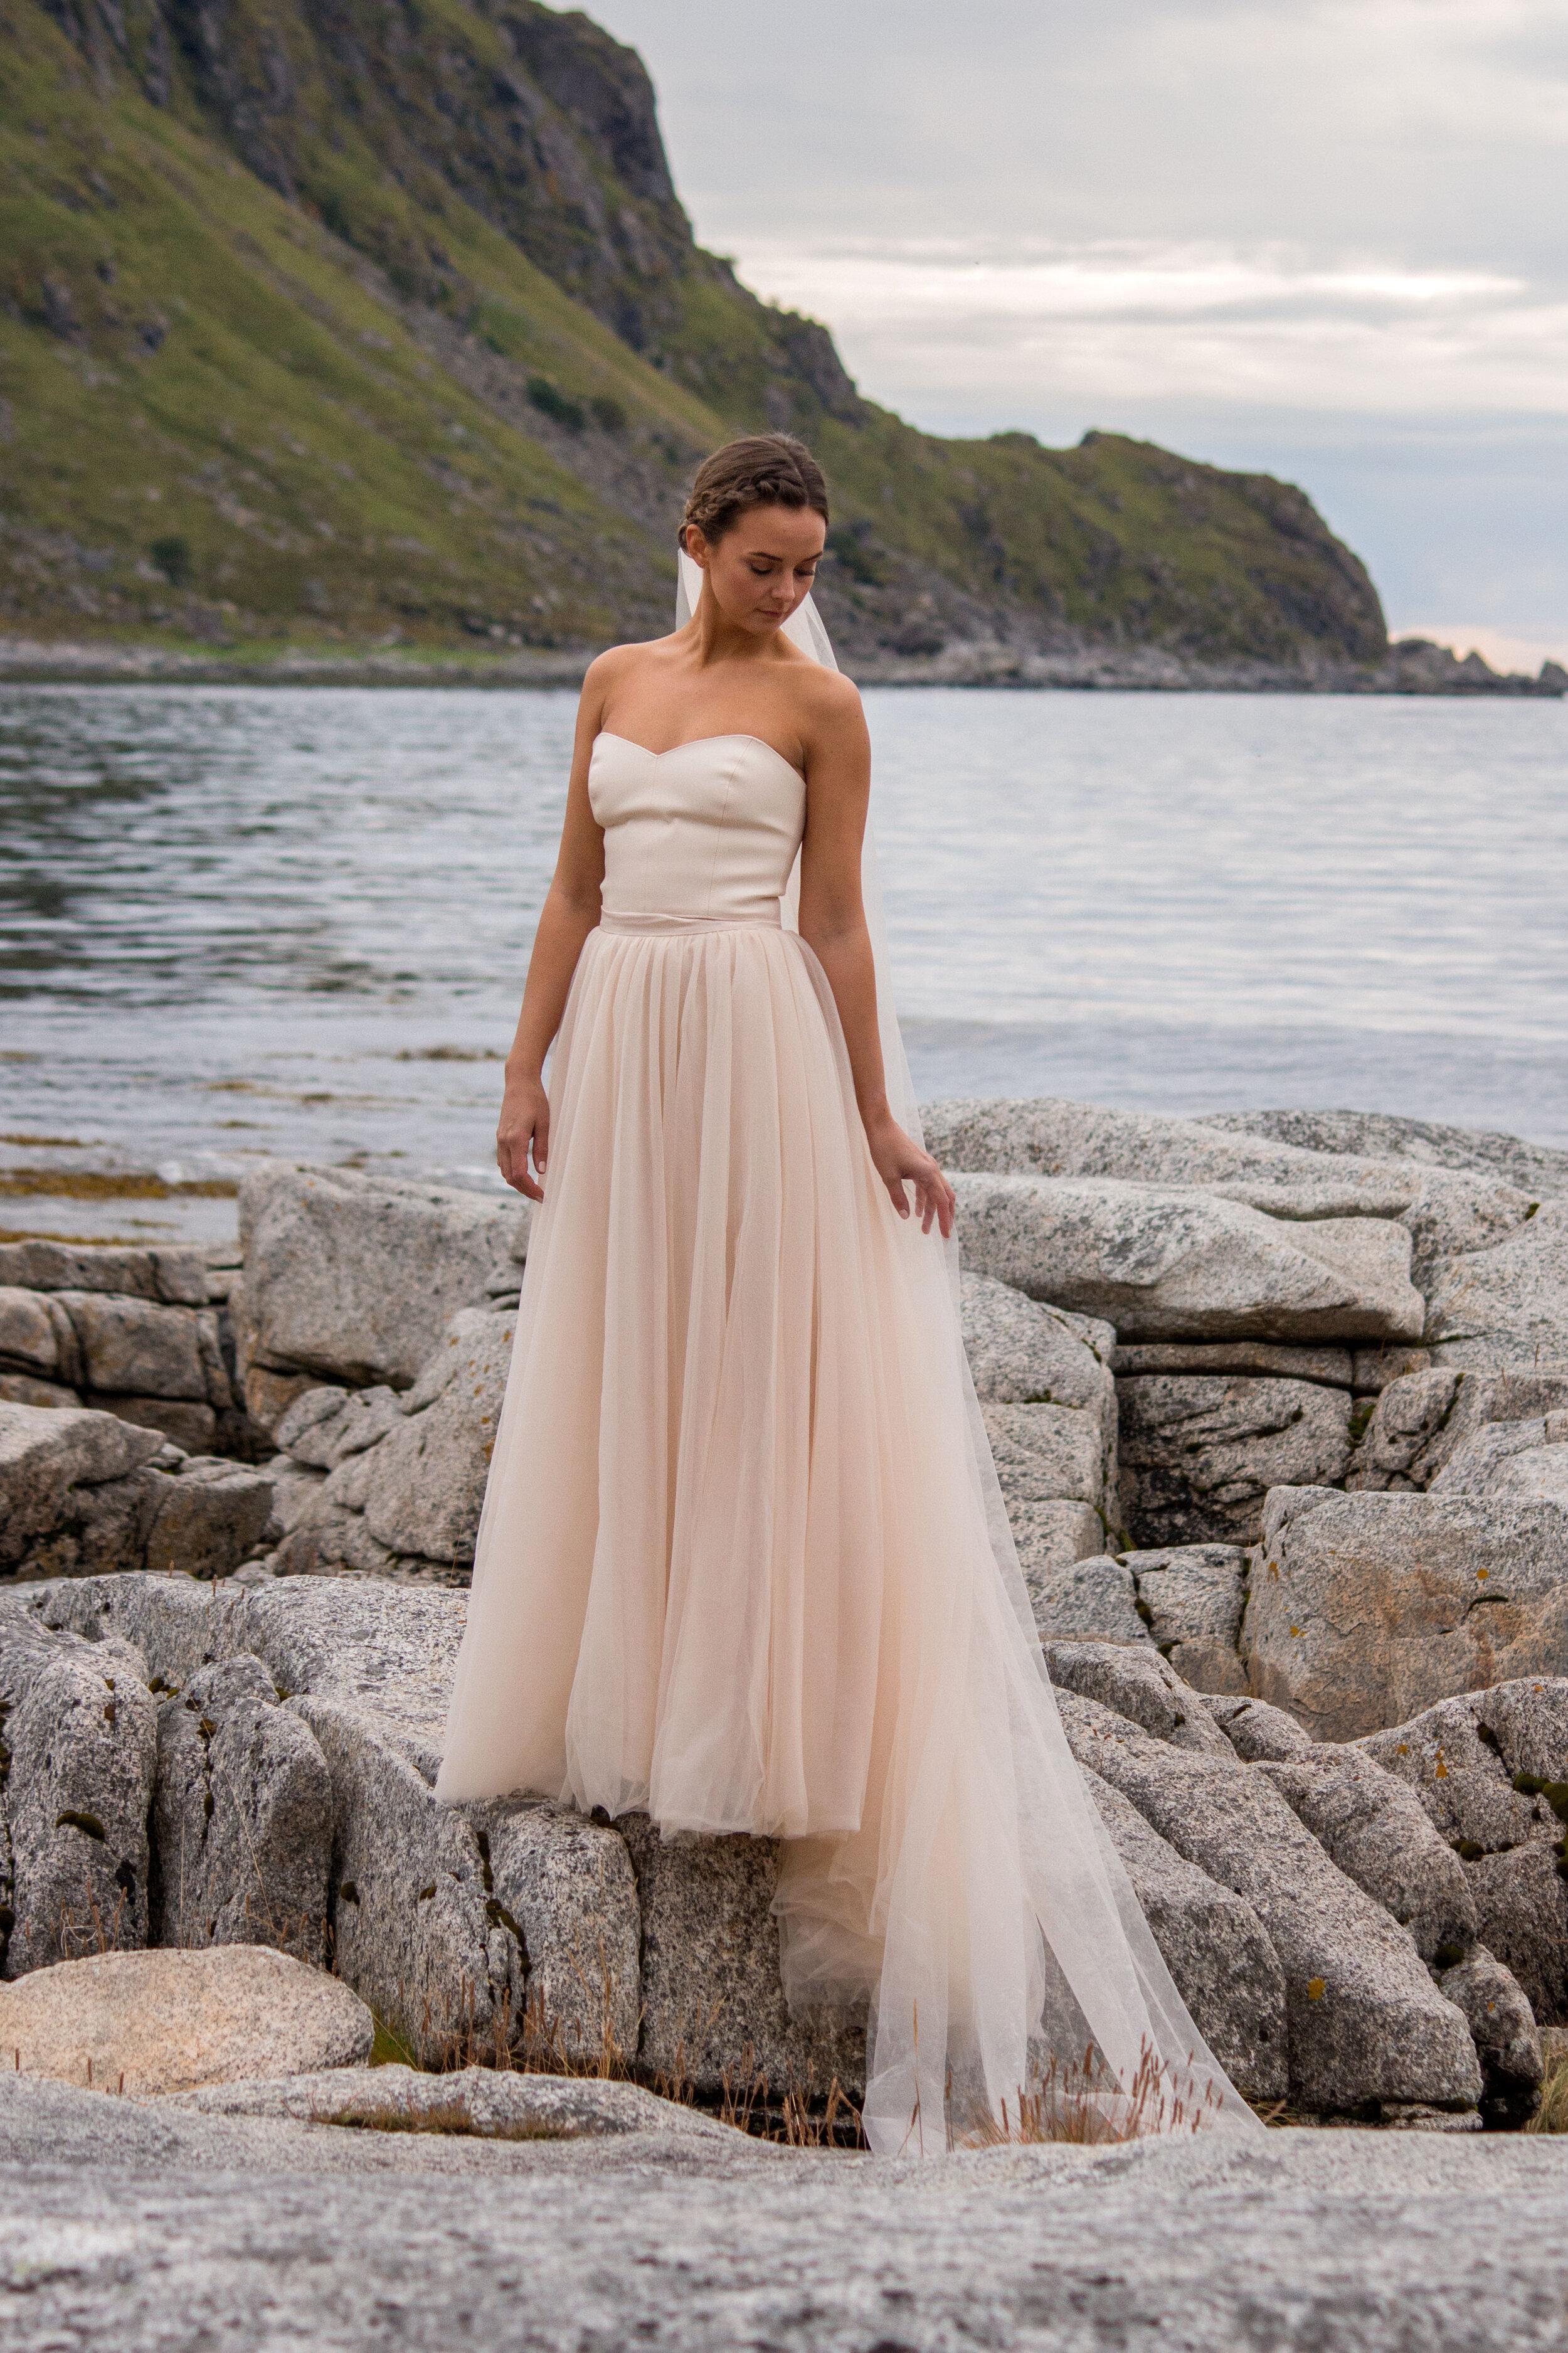 The beige tulle skirt however, is from our own brand  Ellen Marie Bridal by Sisters in Law . We made a long veil in the same color, and a shoulderless top in fake leather.